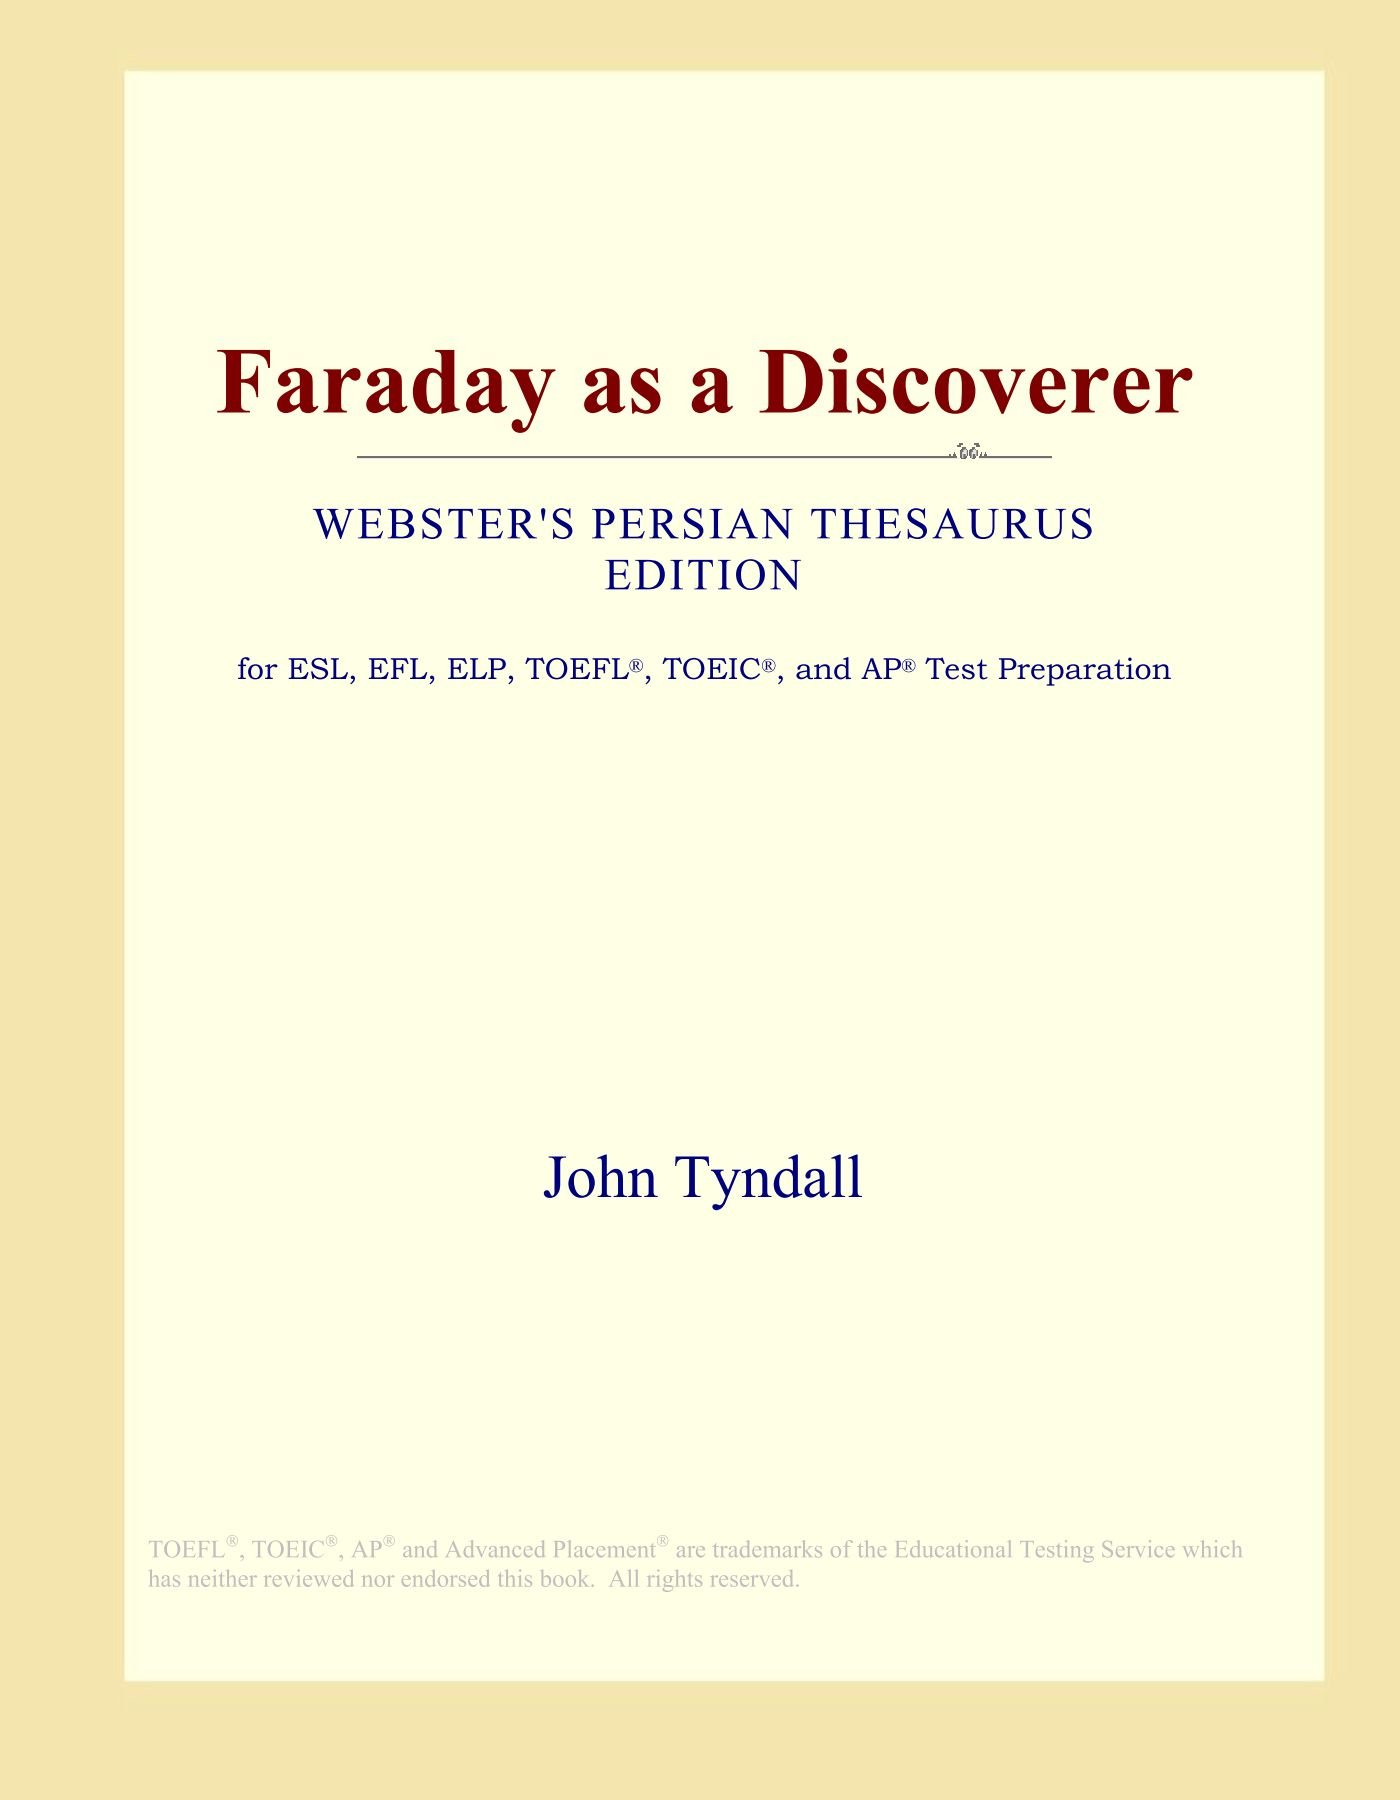 Faraday as a Discoverer (Webster's Persian Thesaurus Edition) ebook